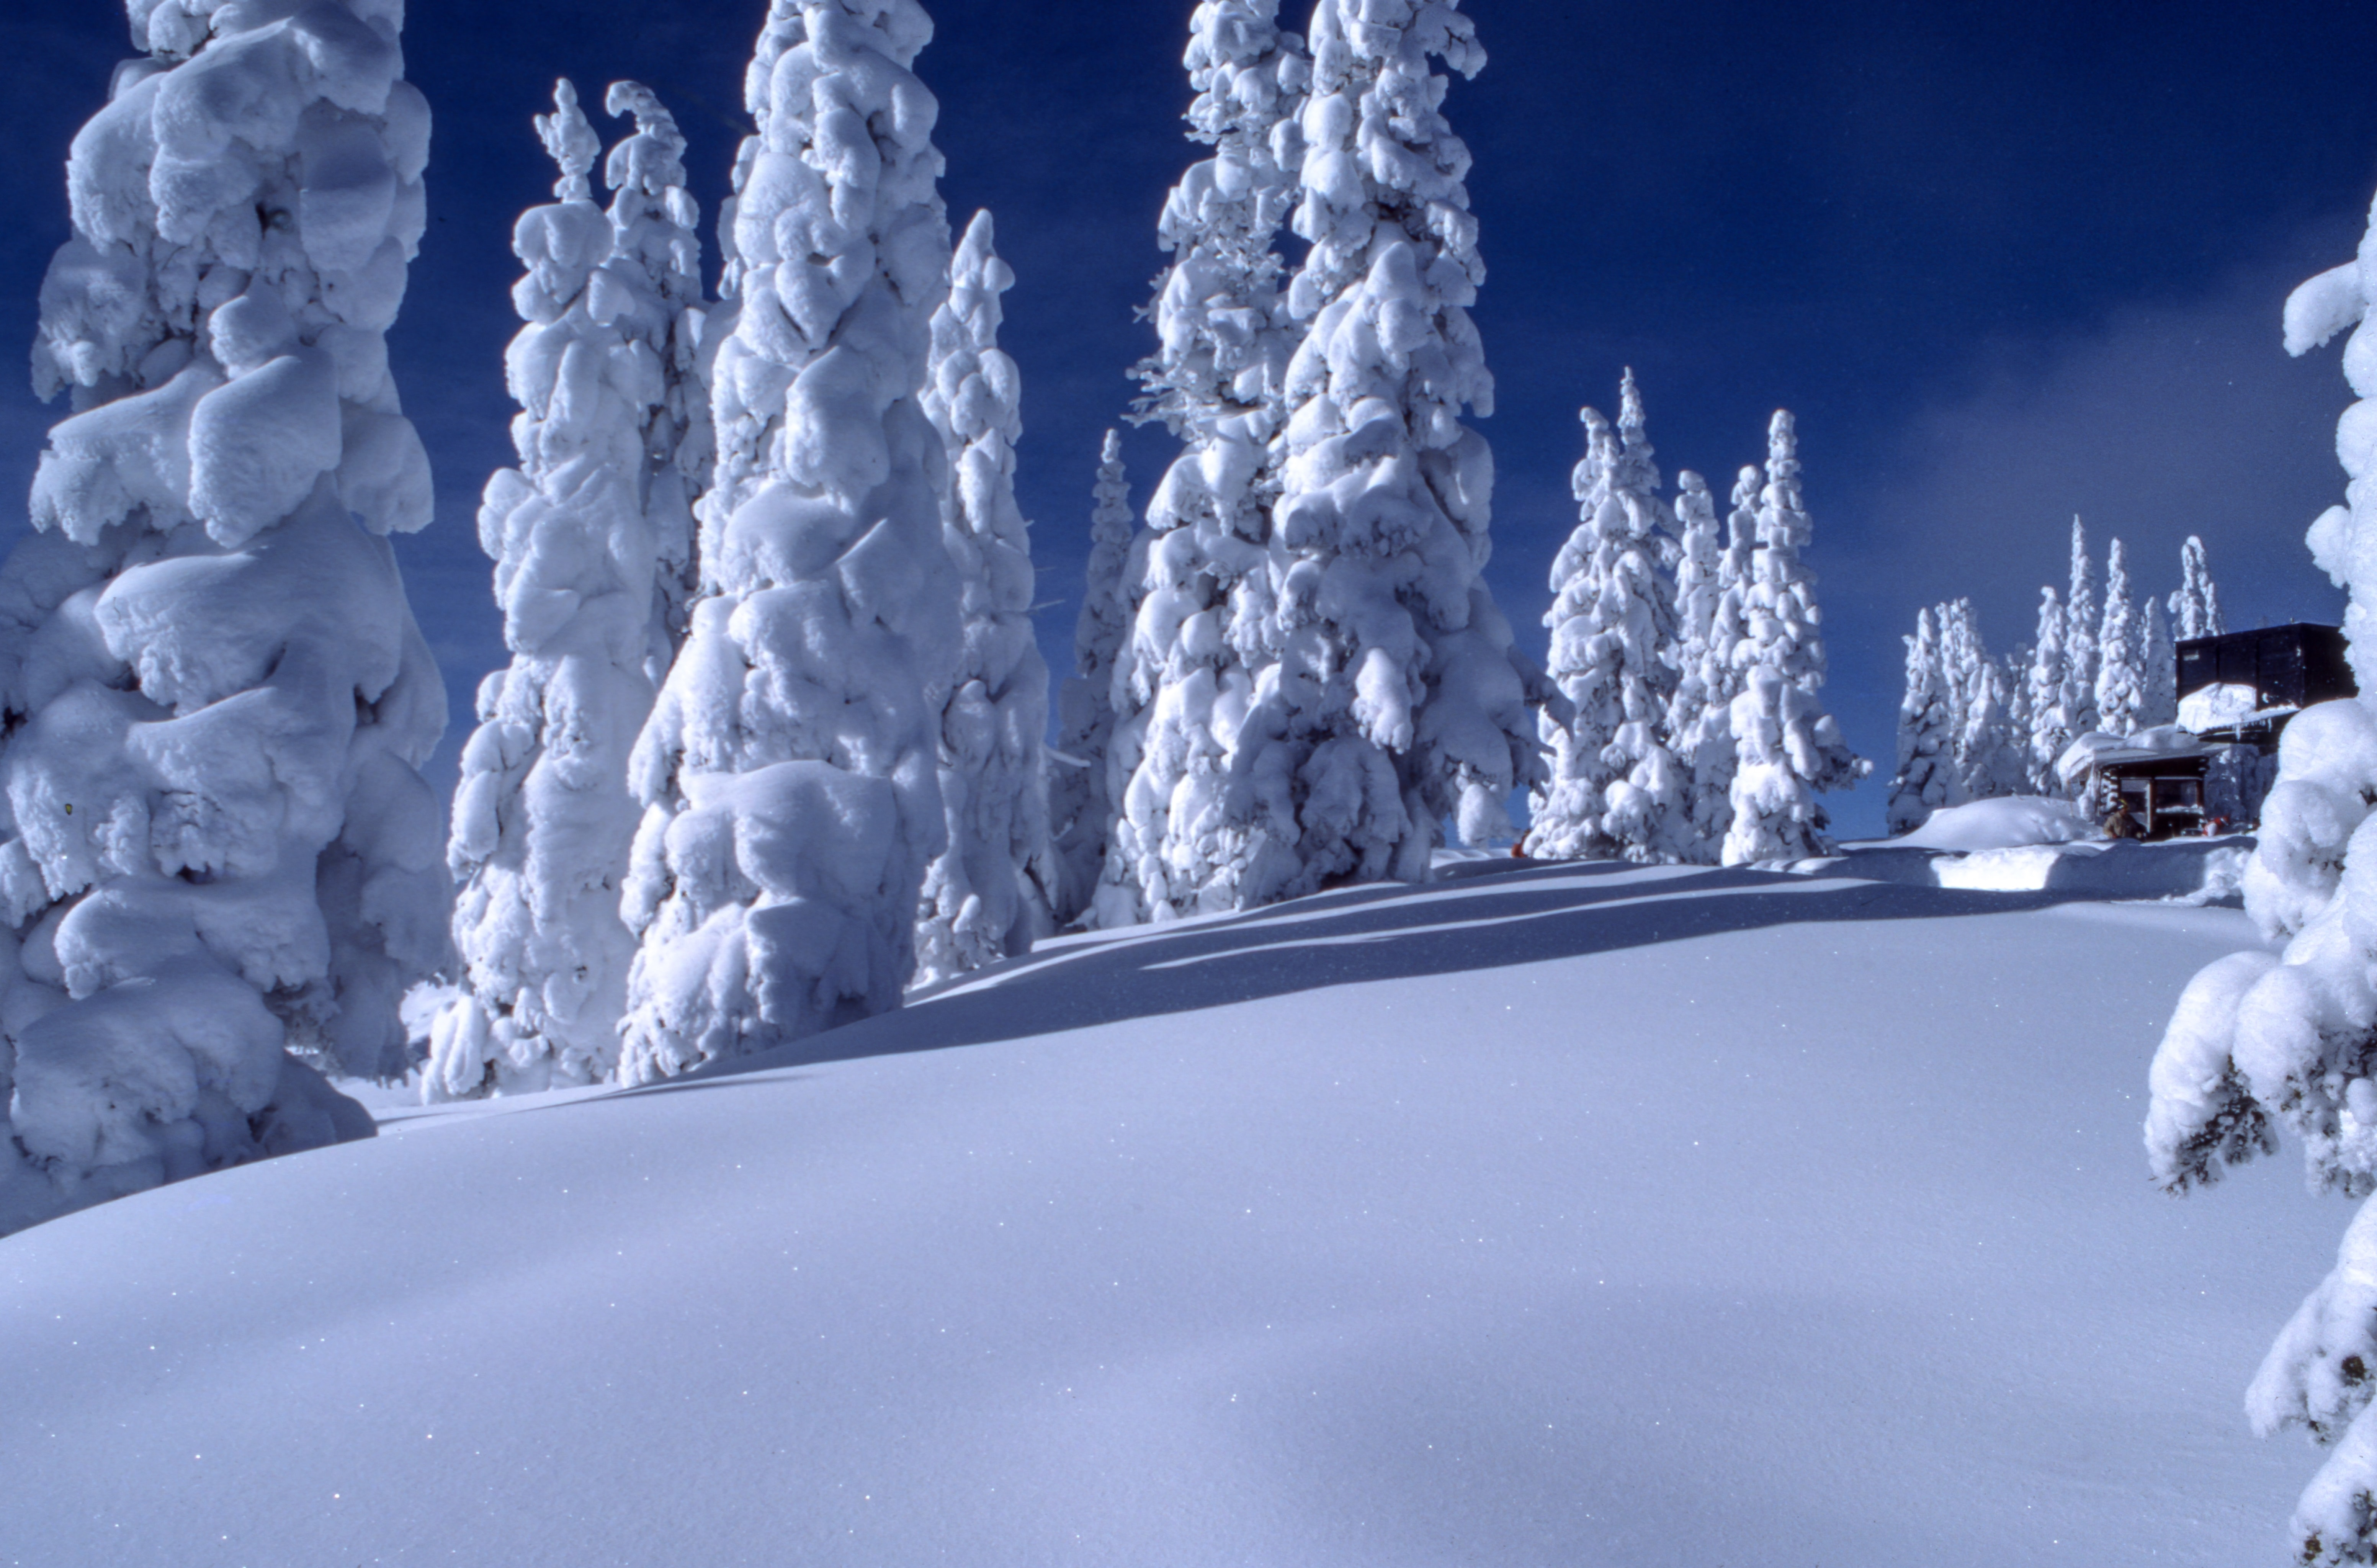 Looking uphill toward a cabin in the forest after a heavy snowfall